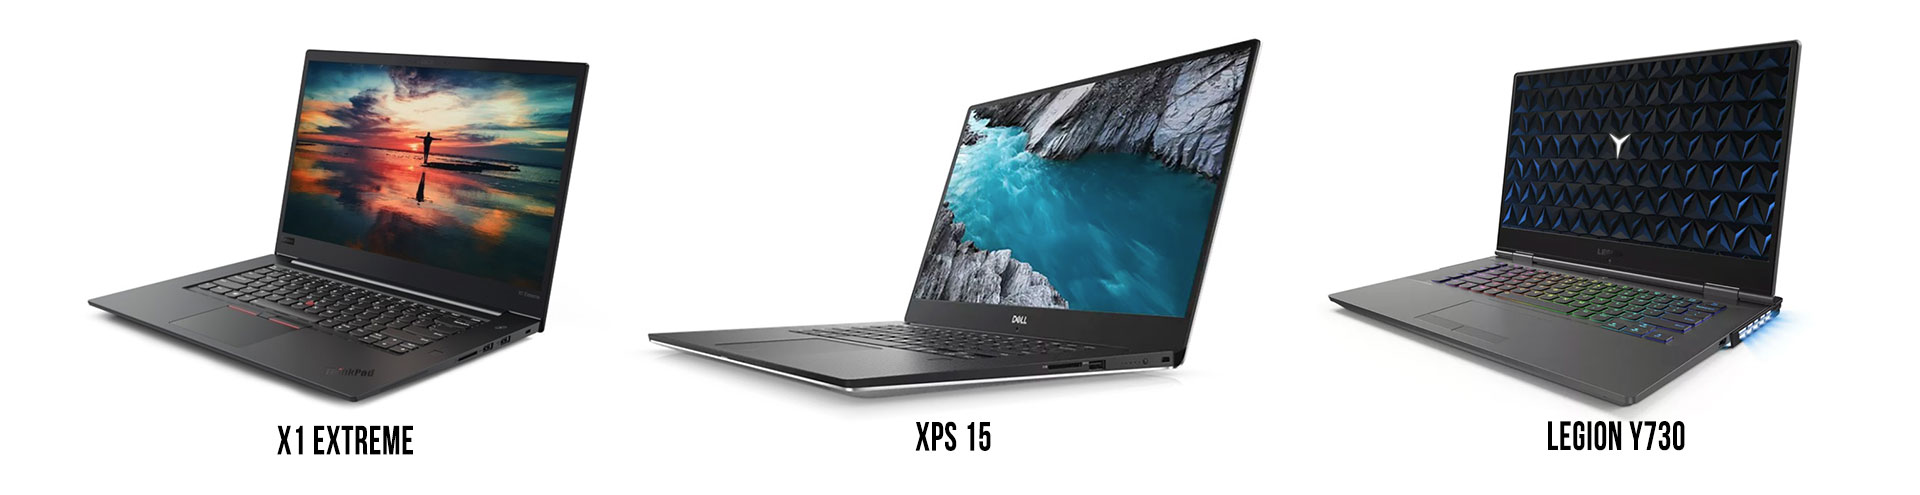 Best portable laptops and ultrabooks in 2019 - complete buying guide